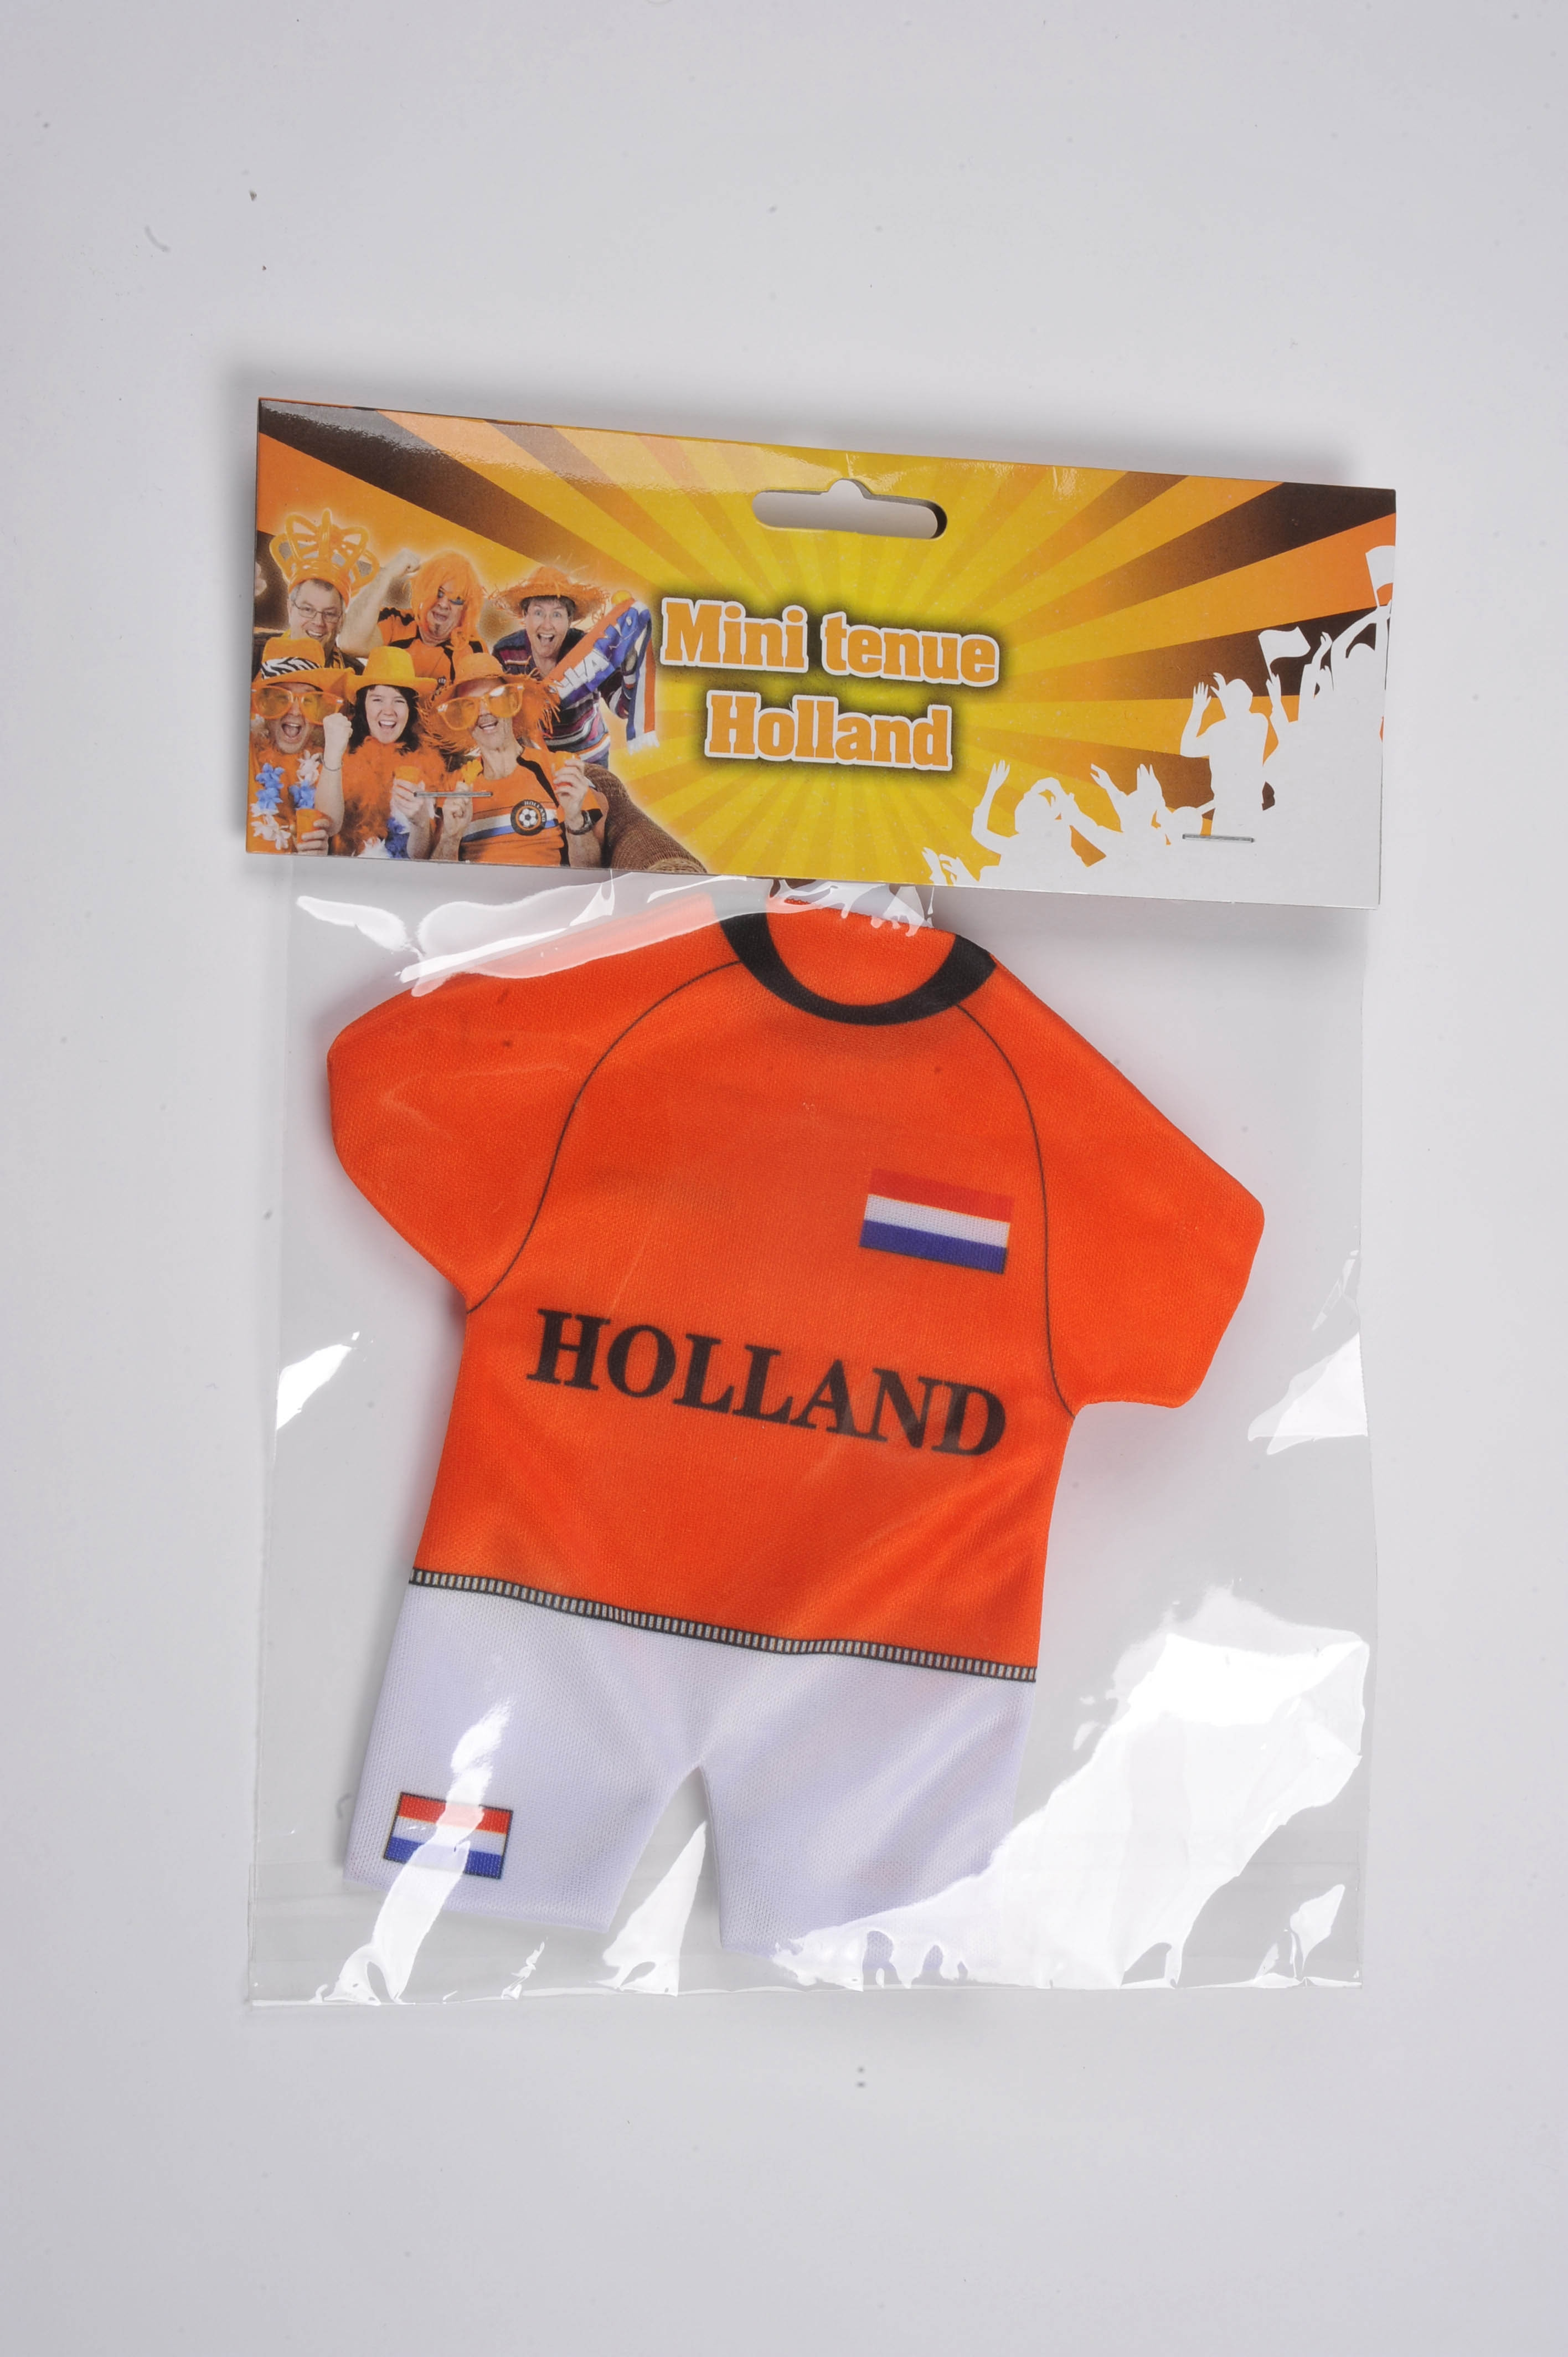 Autohanger Oranje tenue holland